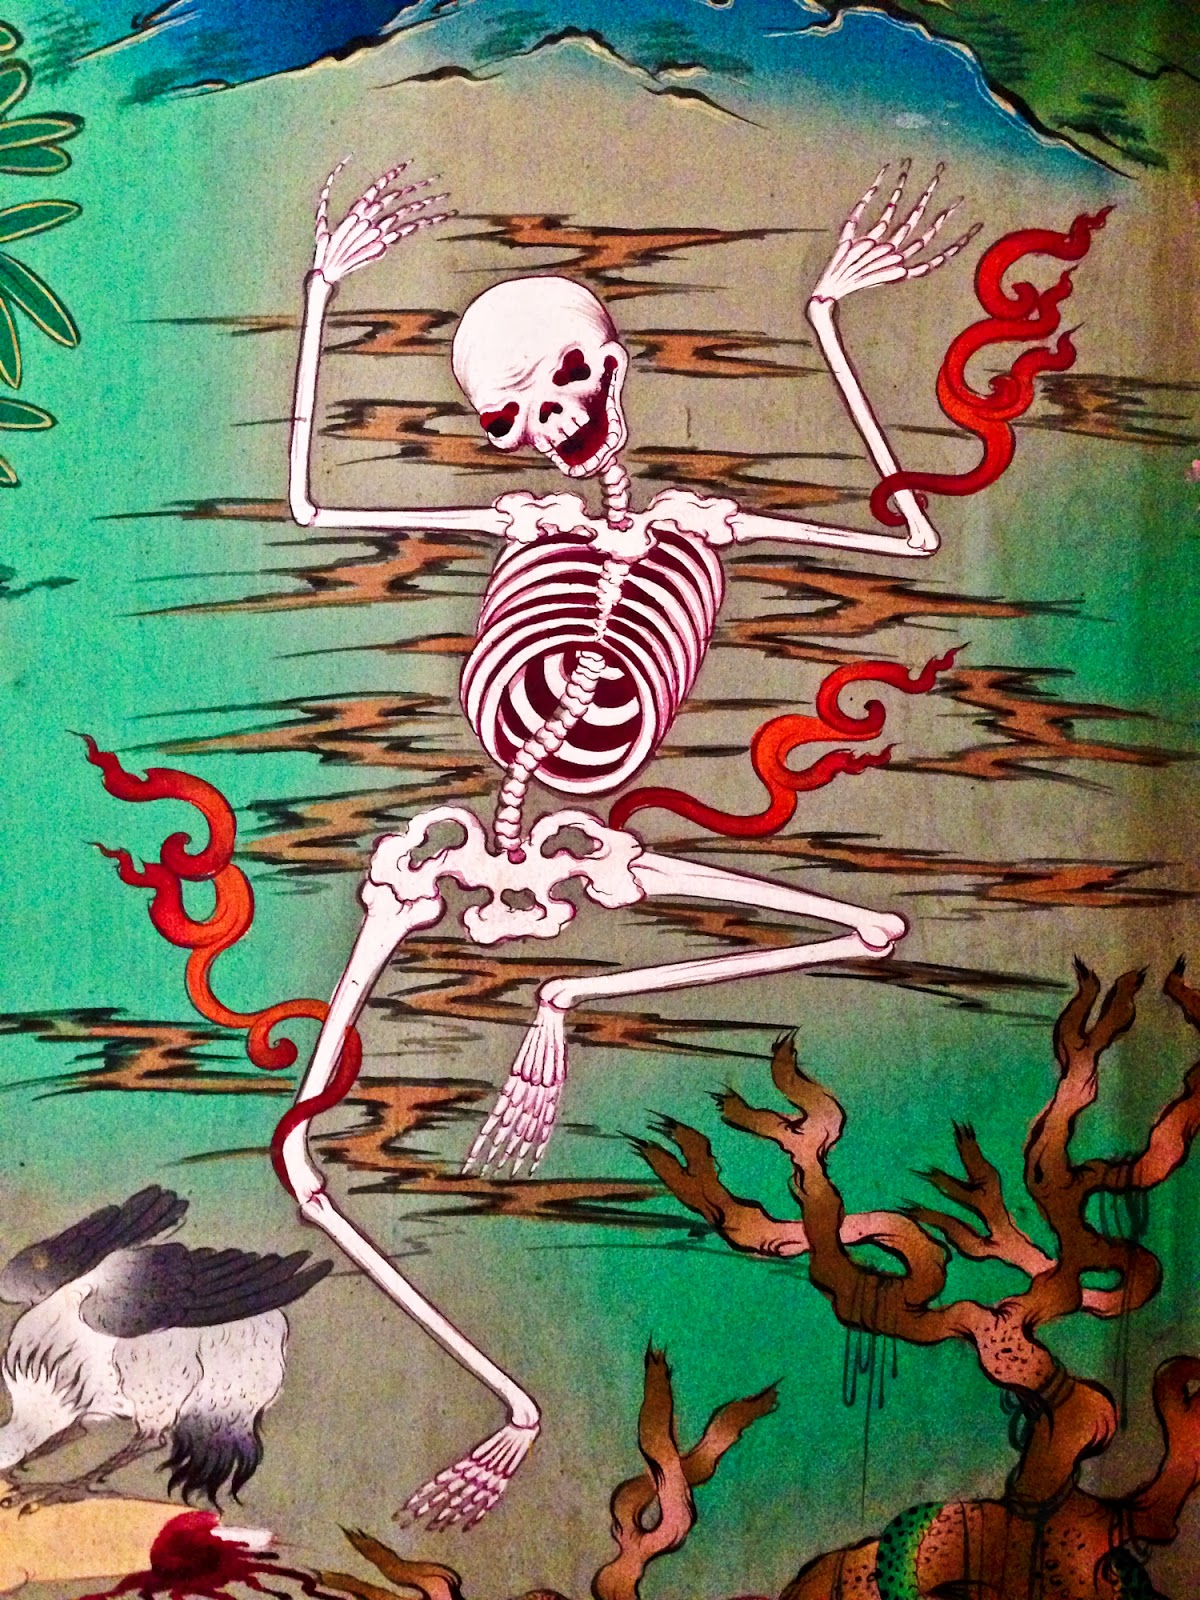 Tibetan Buddhist skeleton dancing in reds and greens.